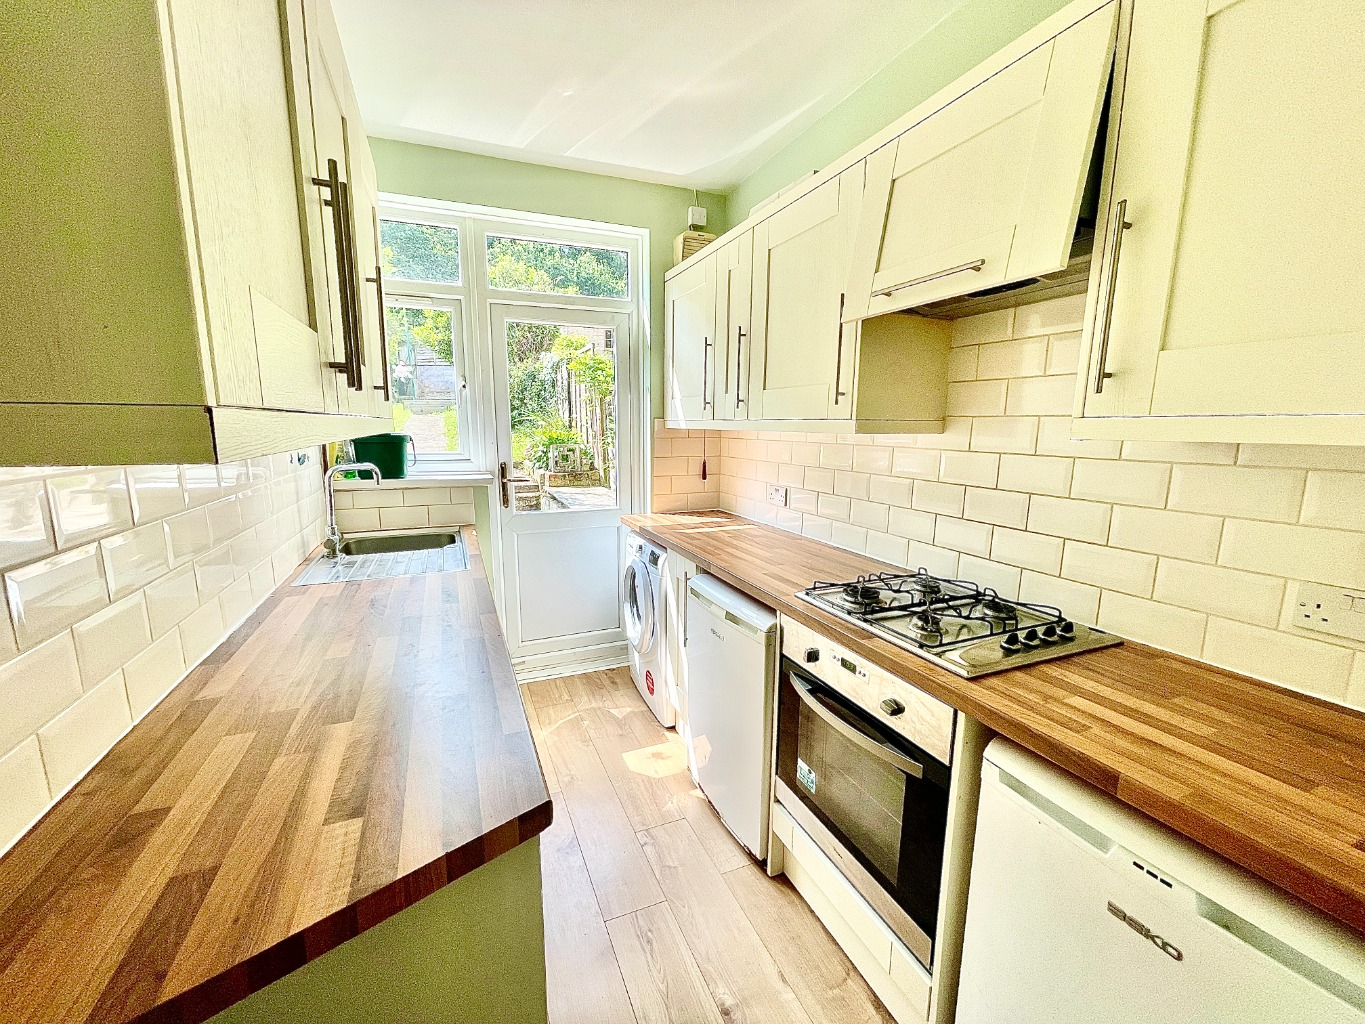 3 bed terraced house to rent in Commonwealth Way, London, SE2